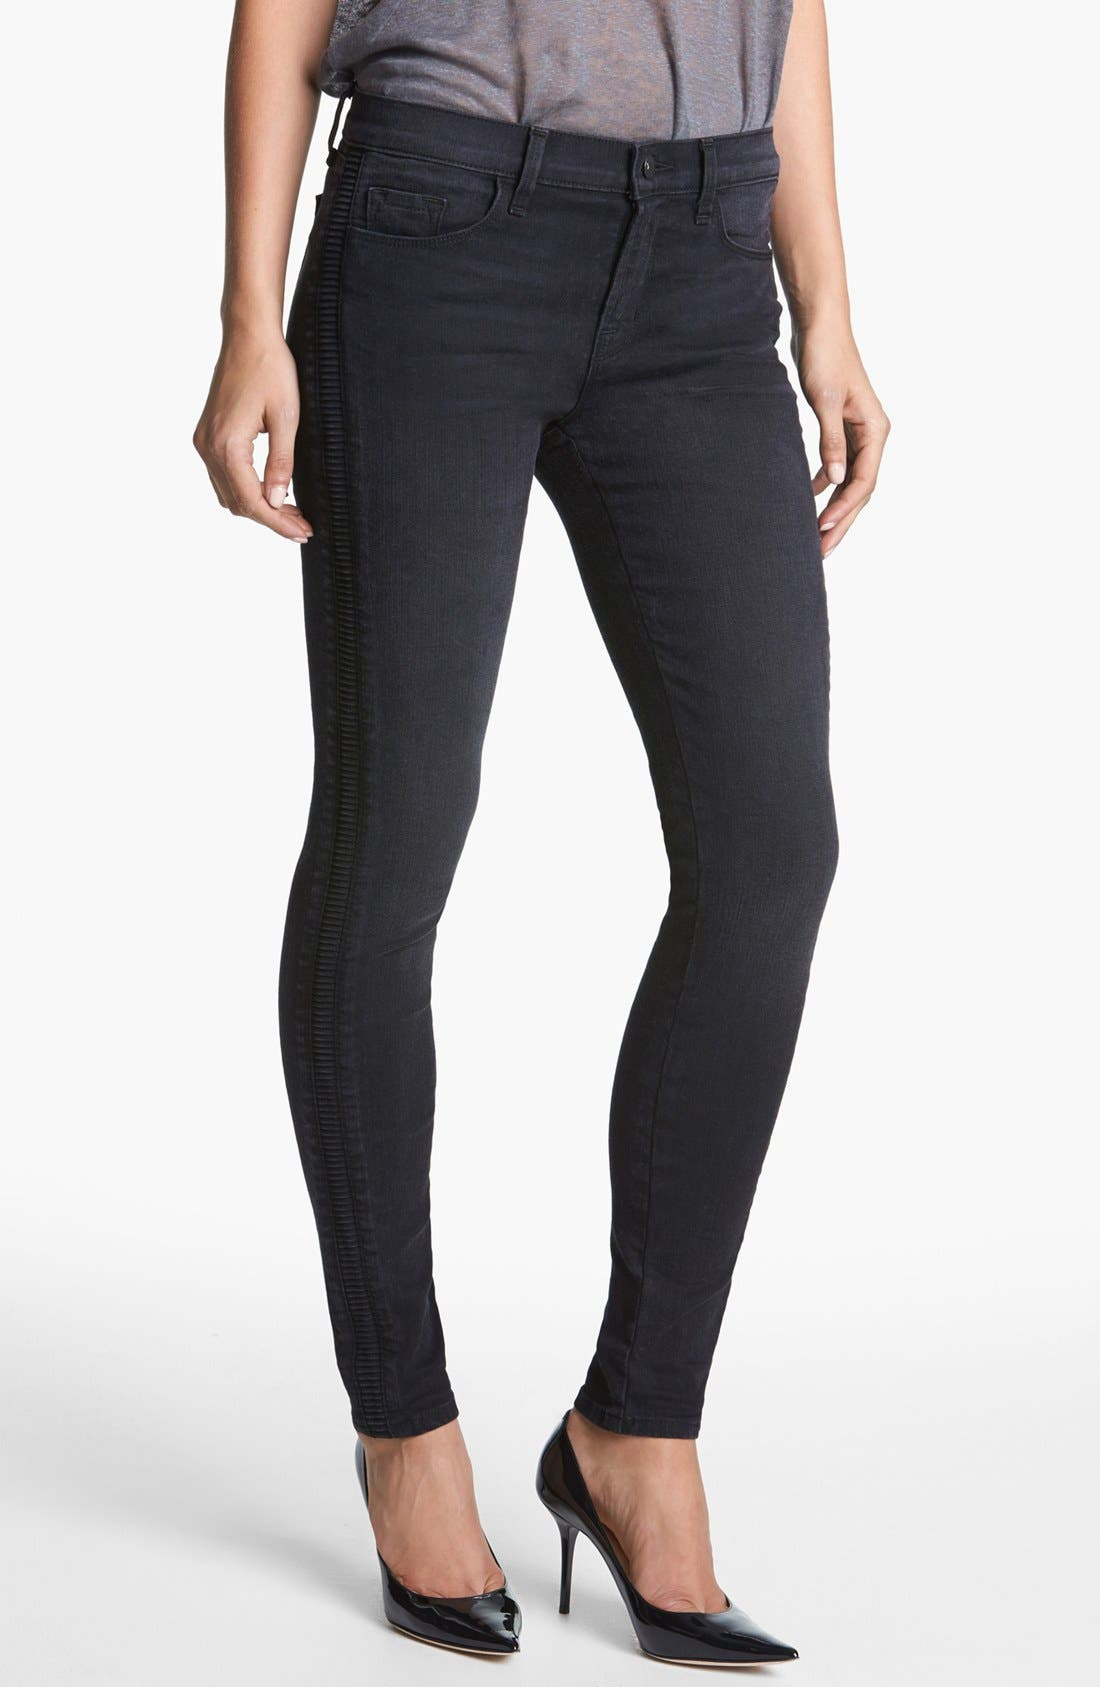 Main Image - J Brand '8072 The Liberty' Side Pleat Skinny Jeans (Graphite)